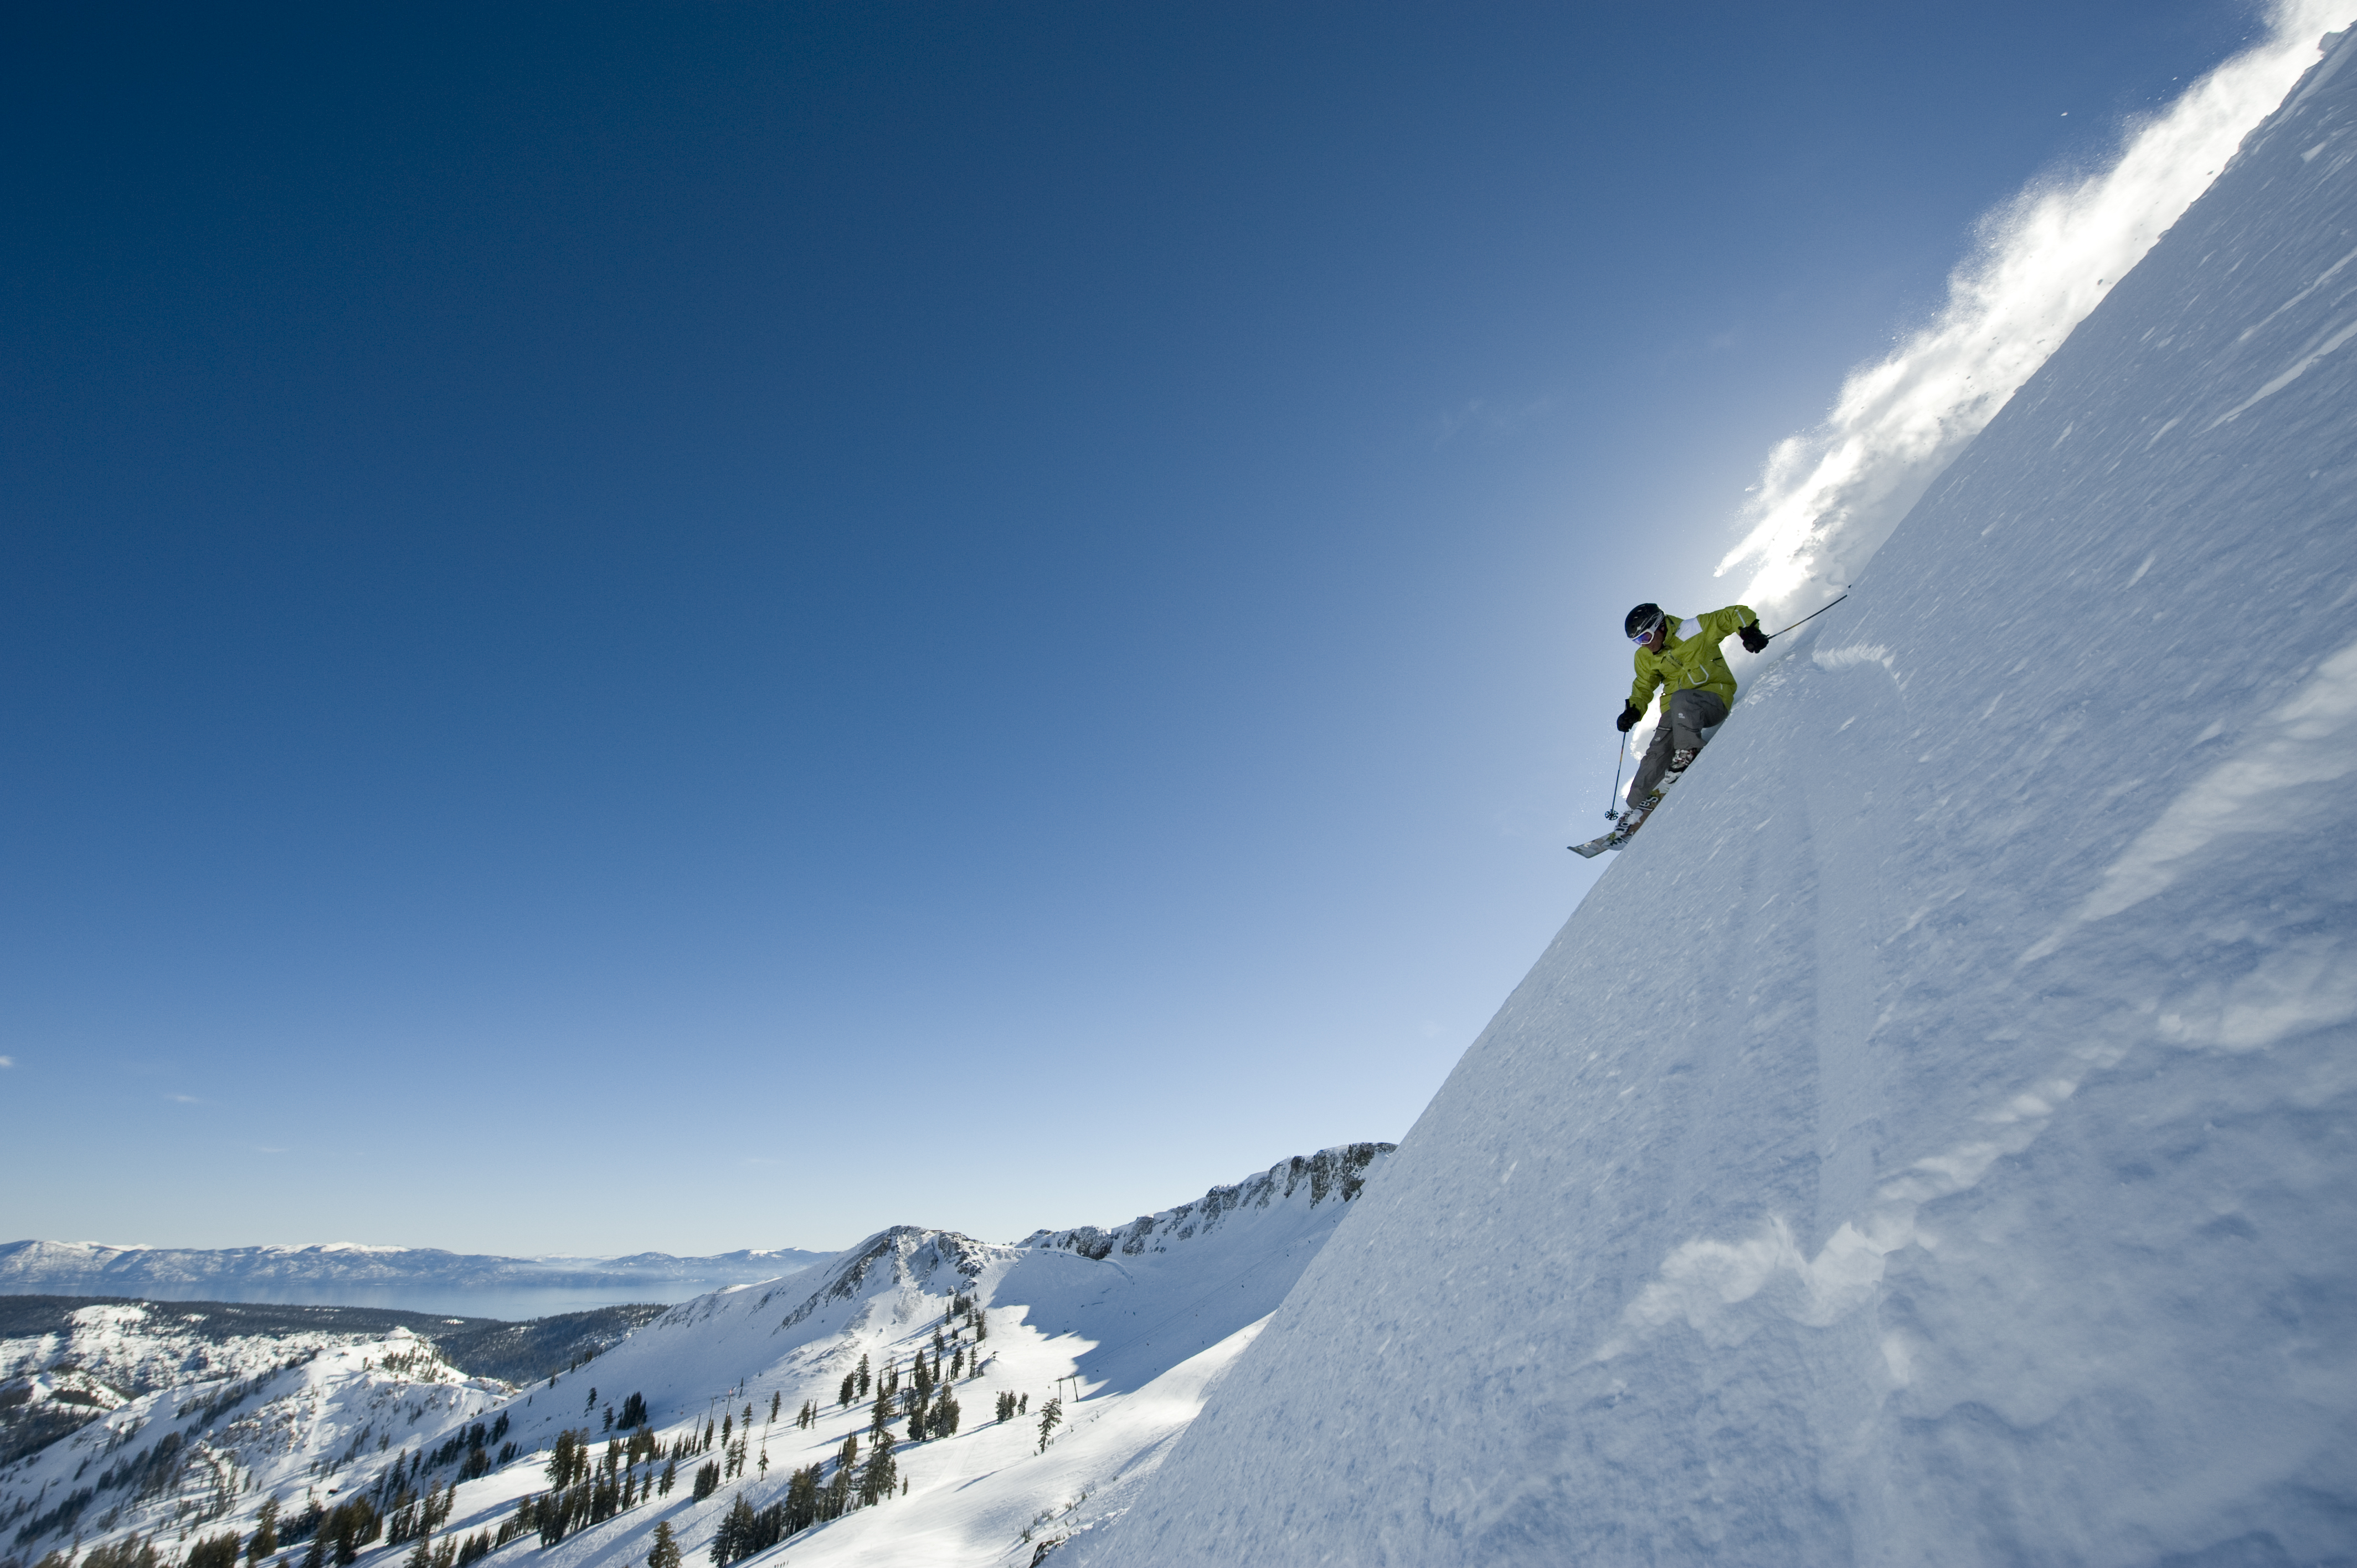 Photograph of skier at Squaw Valley